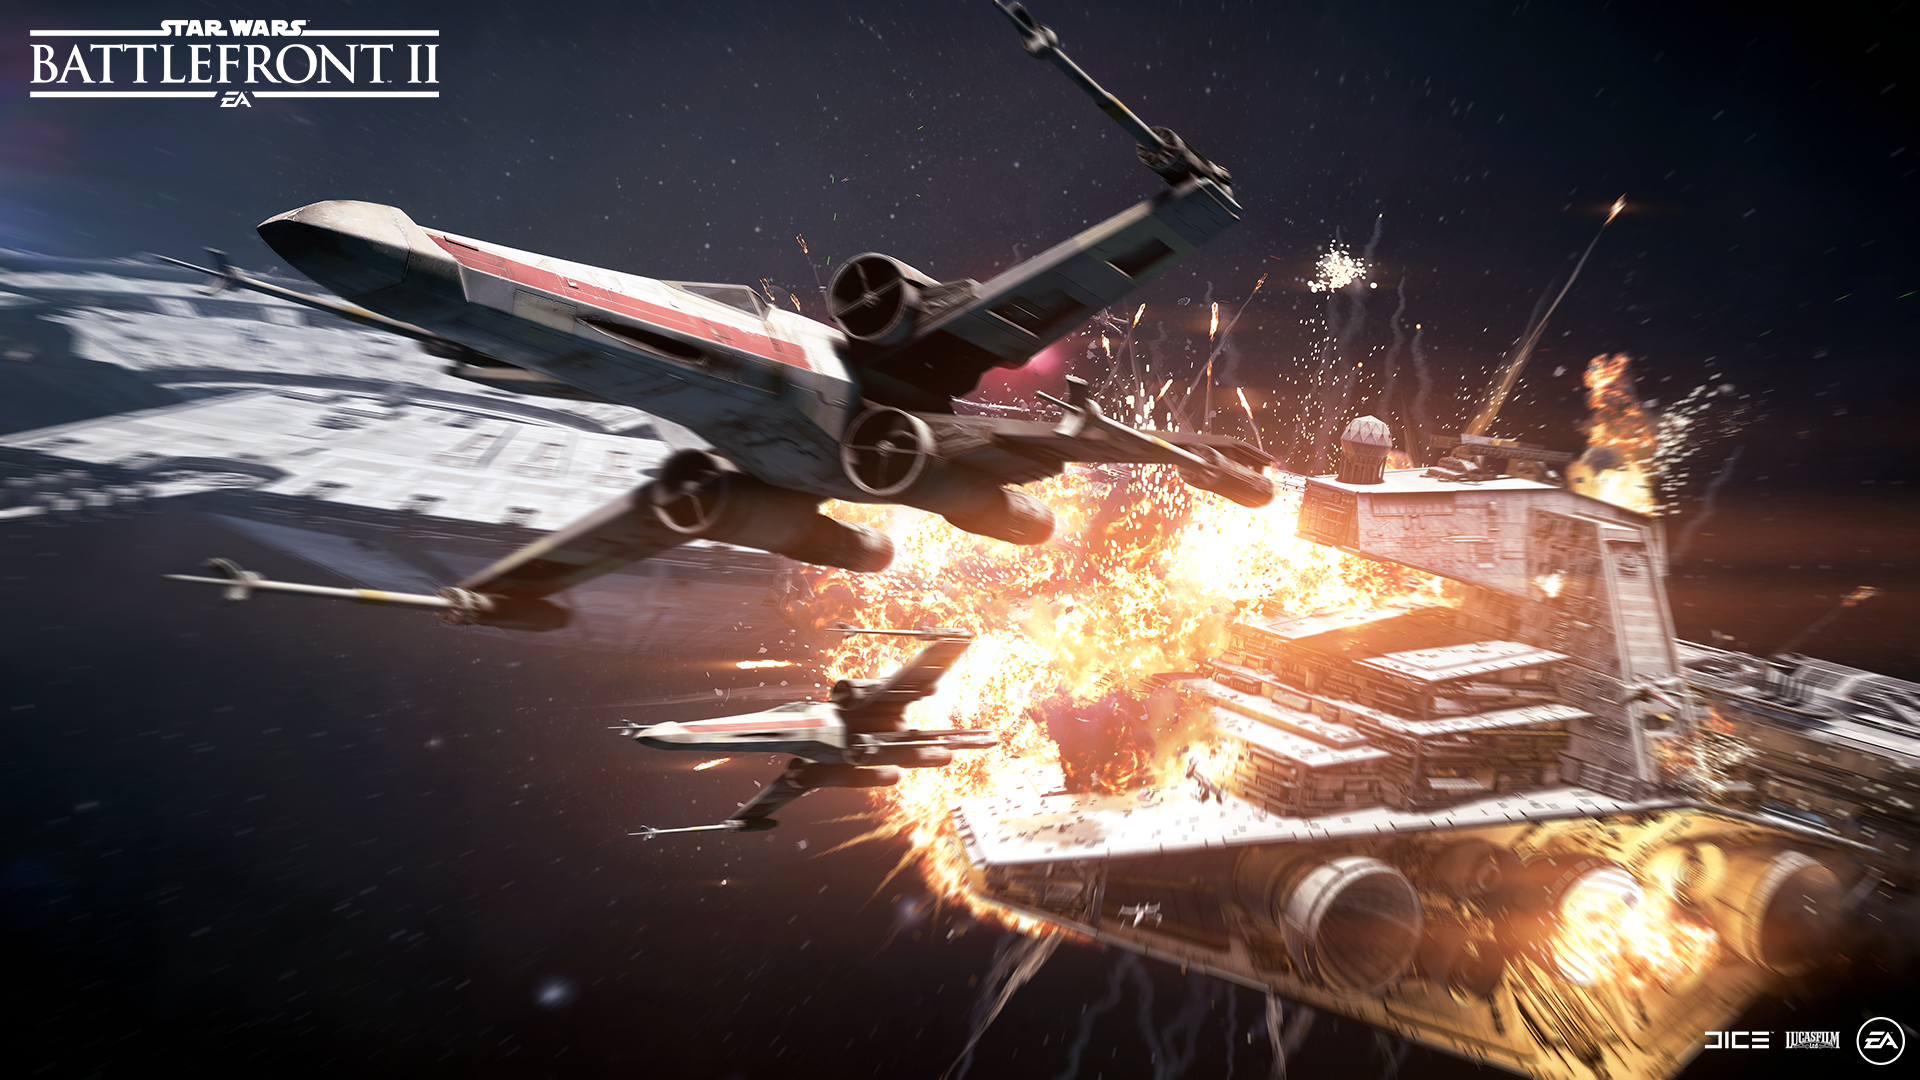 Will Electronic Arts' Waffling Torpedo Star Wars Battlefront's Revenue?